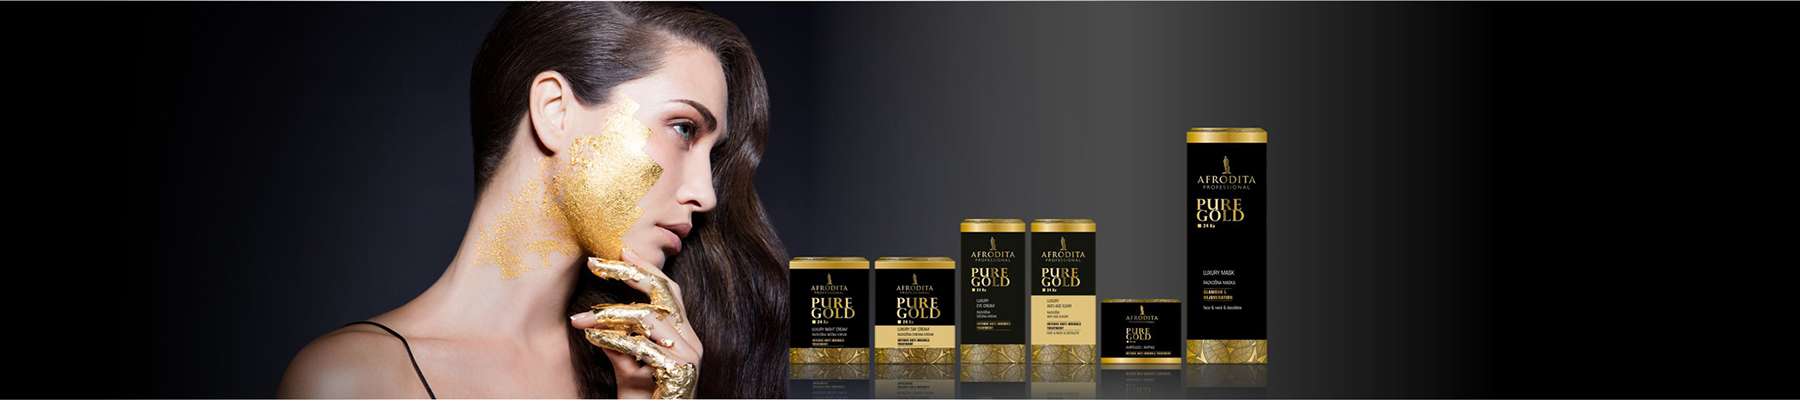 Pure-Gold-24KA-Product-Line